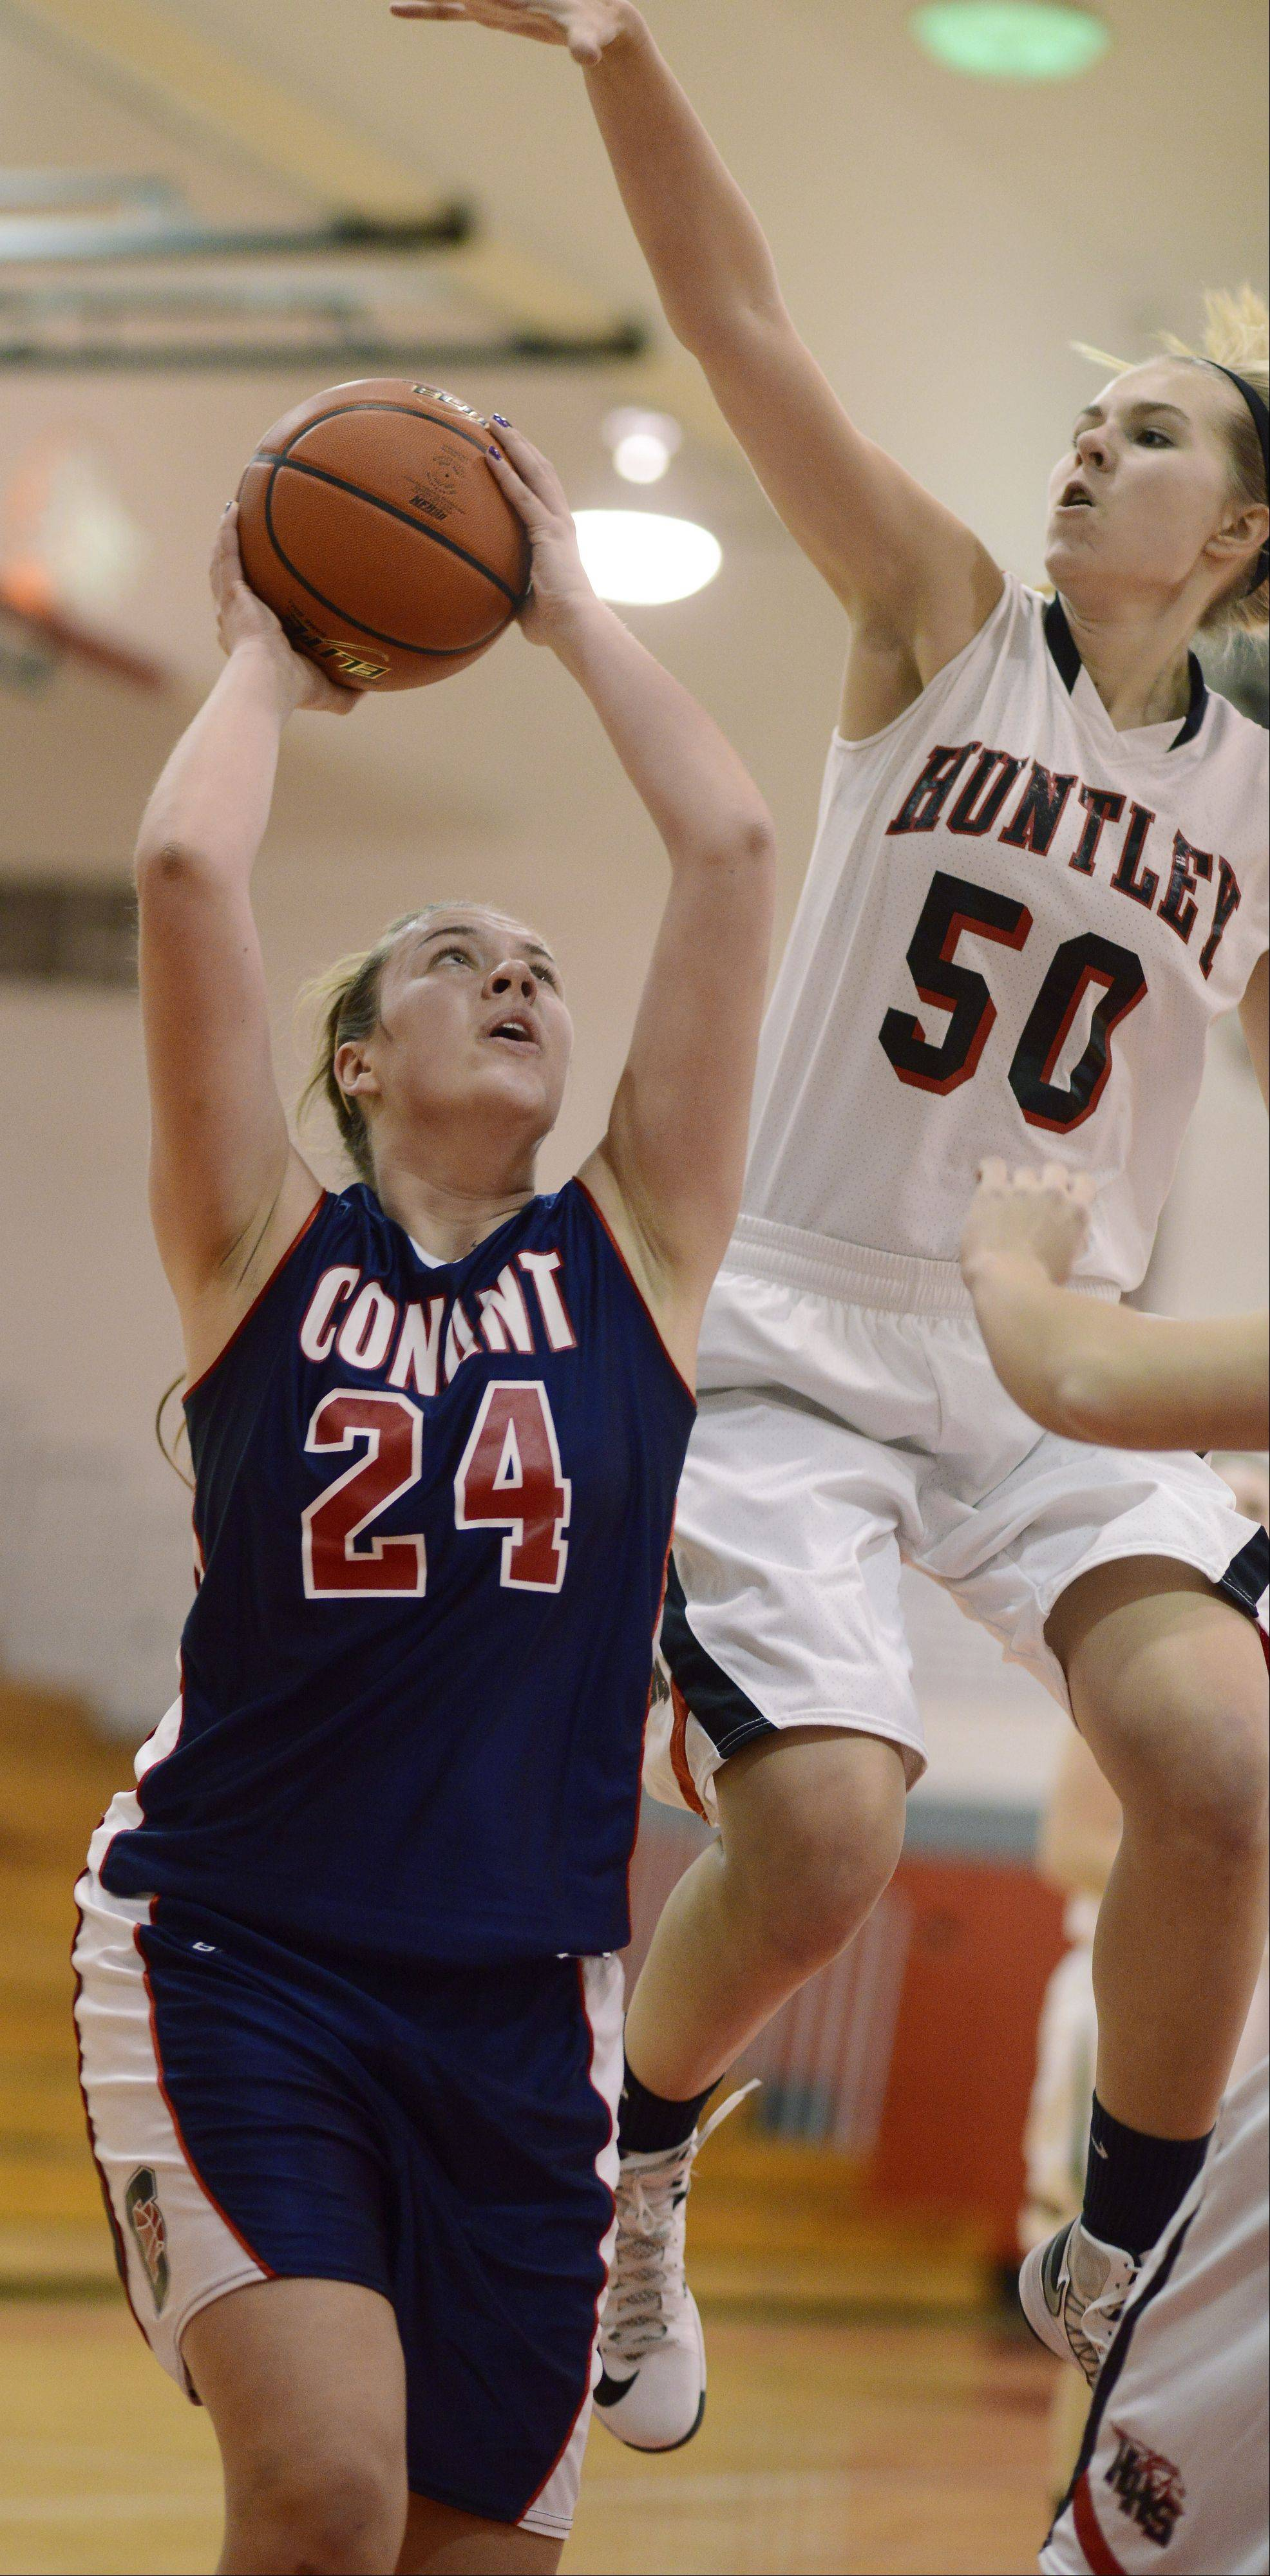 Conant's Haley Anderson, left, takes a shot under the basket as Huntley's Ali Andrews attempts a block during Saturday's game at Mundelein.